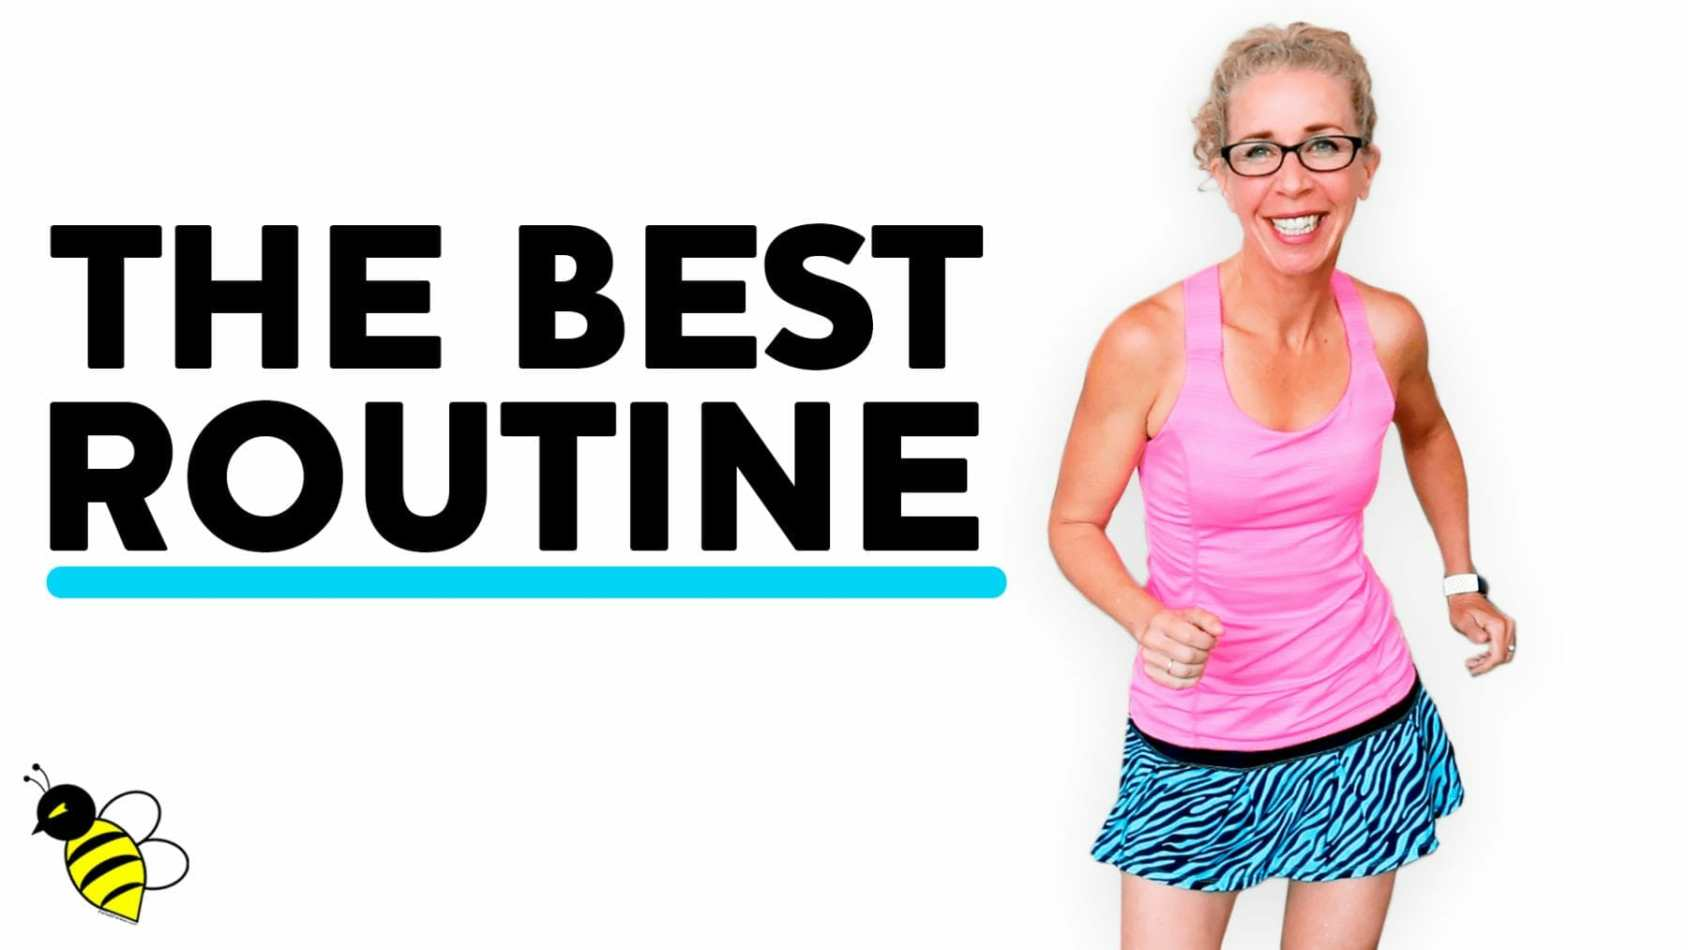 Choosing the BEST Workout Routine, 40 Minute WALK + RUN Let's RUN Podcast with Pahla B